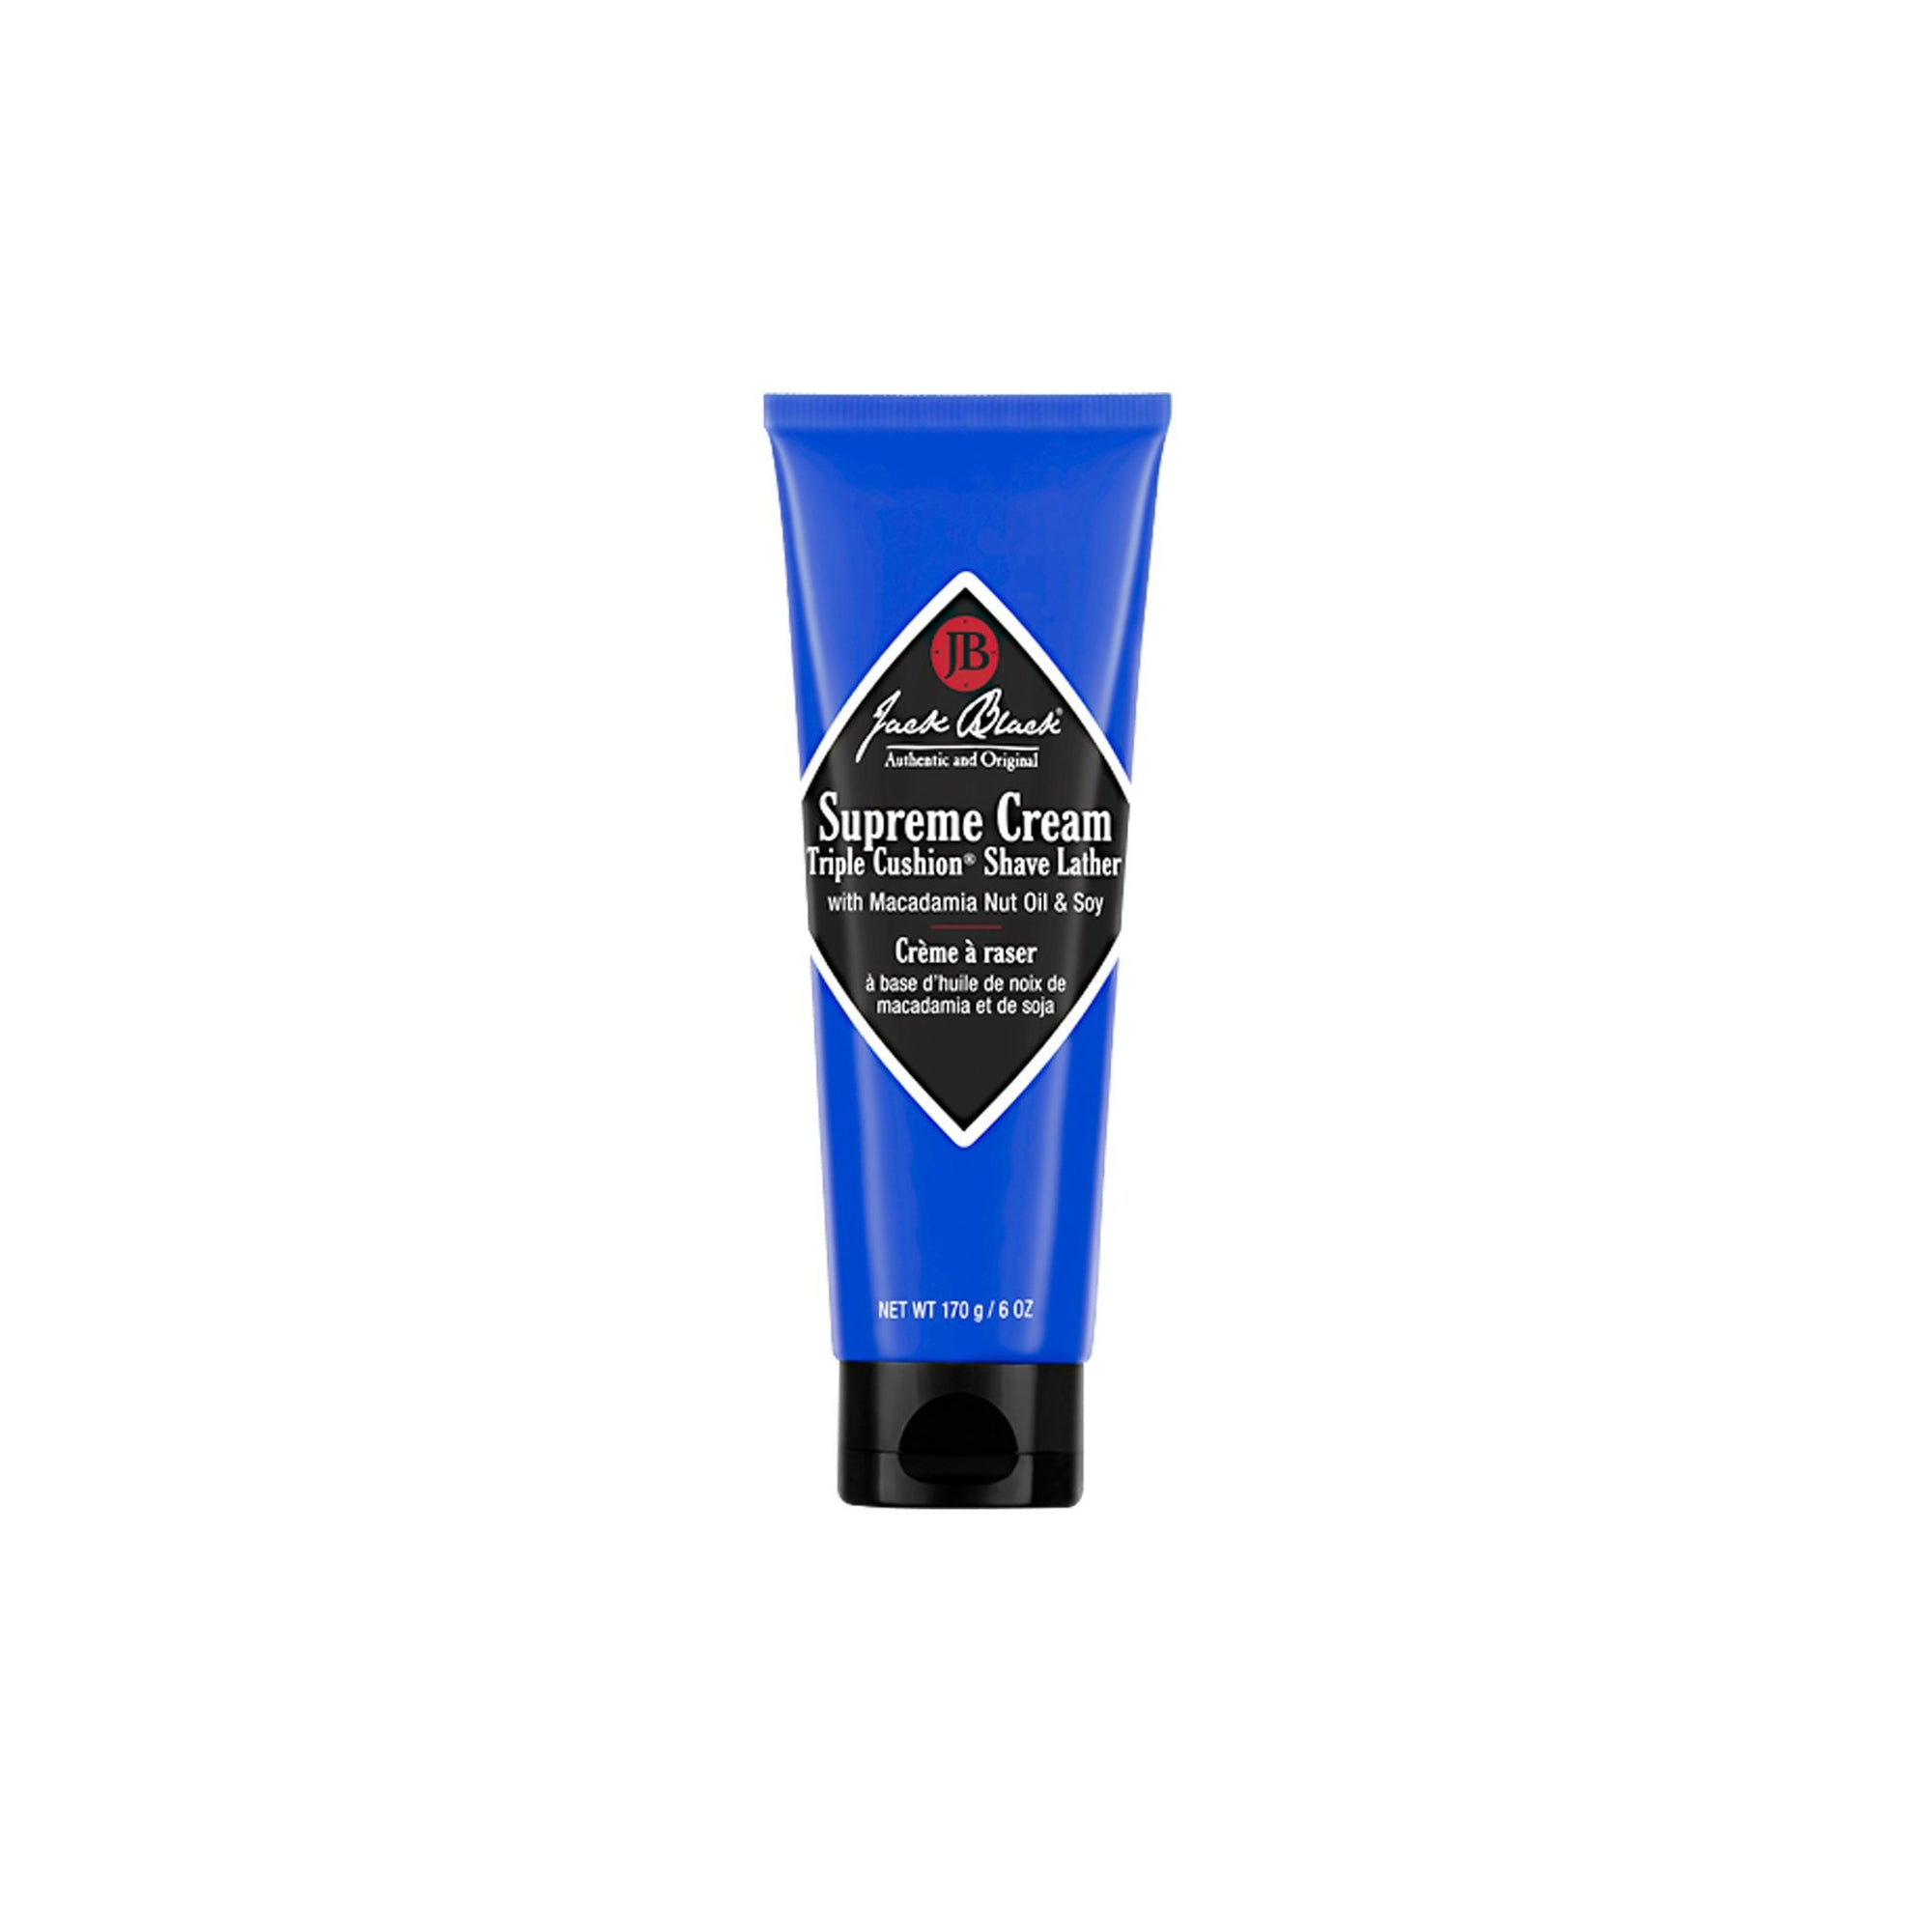 Jack Black Supreme Cream Triple Cushion Shave Lather 177ml